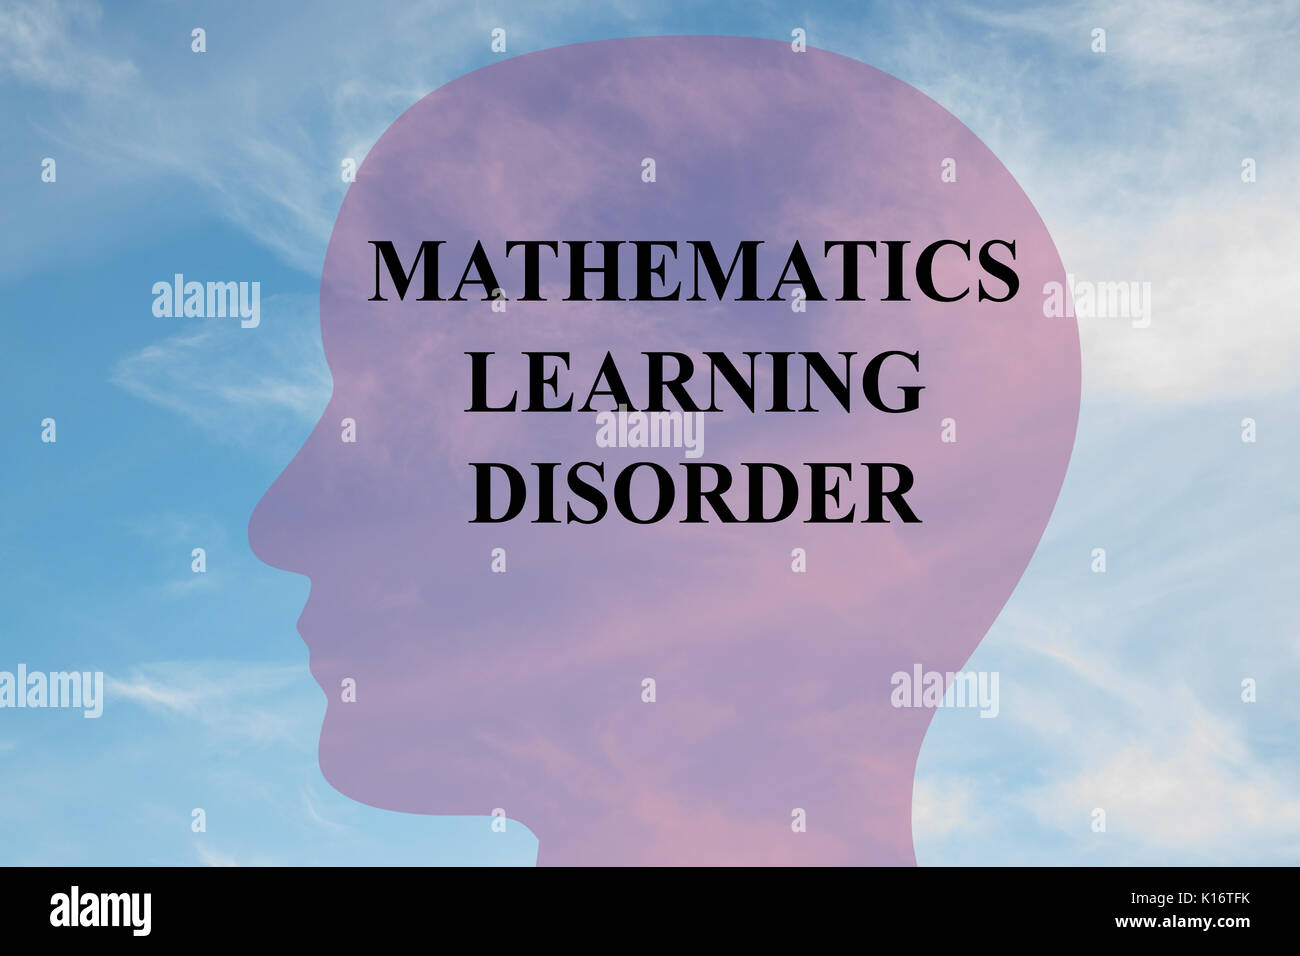 Render illustration of 'MATHEMATICS LEARNING DISORDER' title on head silhouette, with cloudy sky as a background. - Stock Image